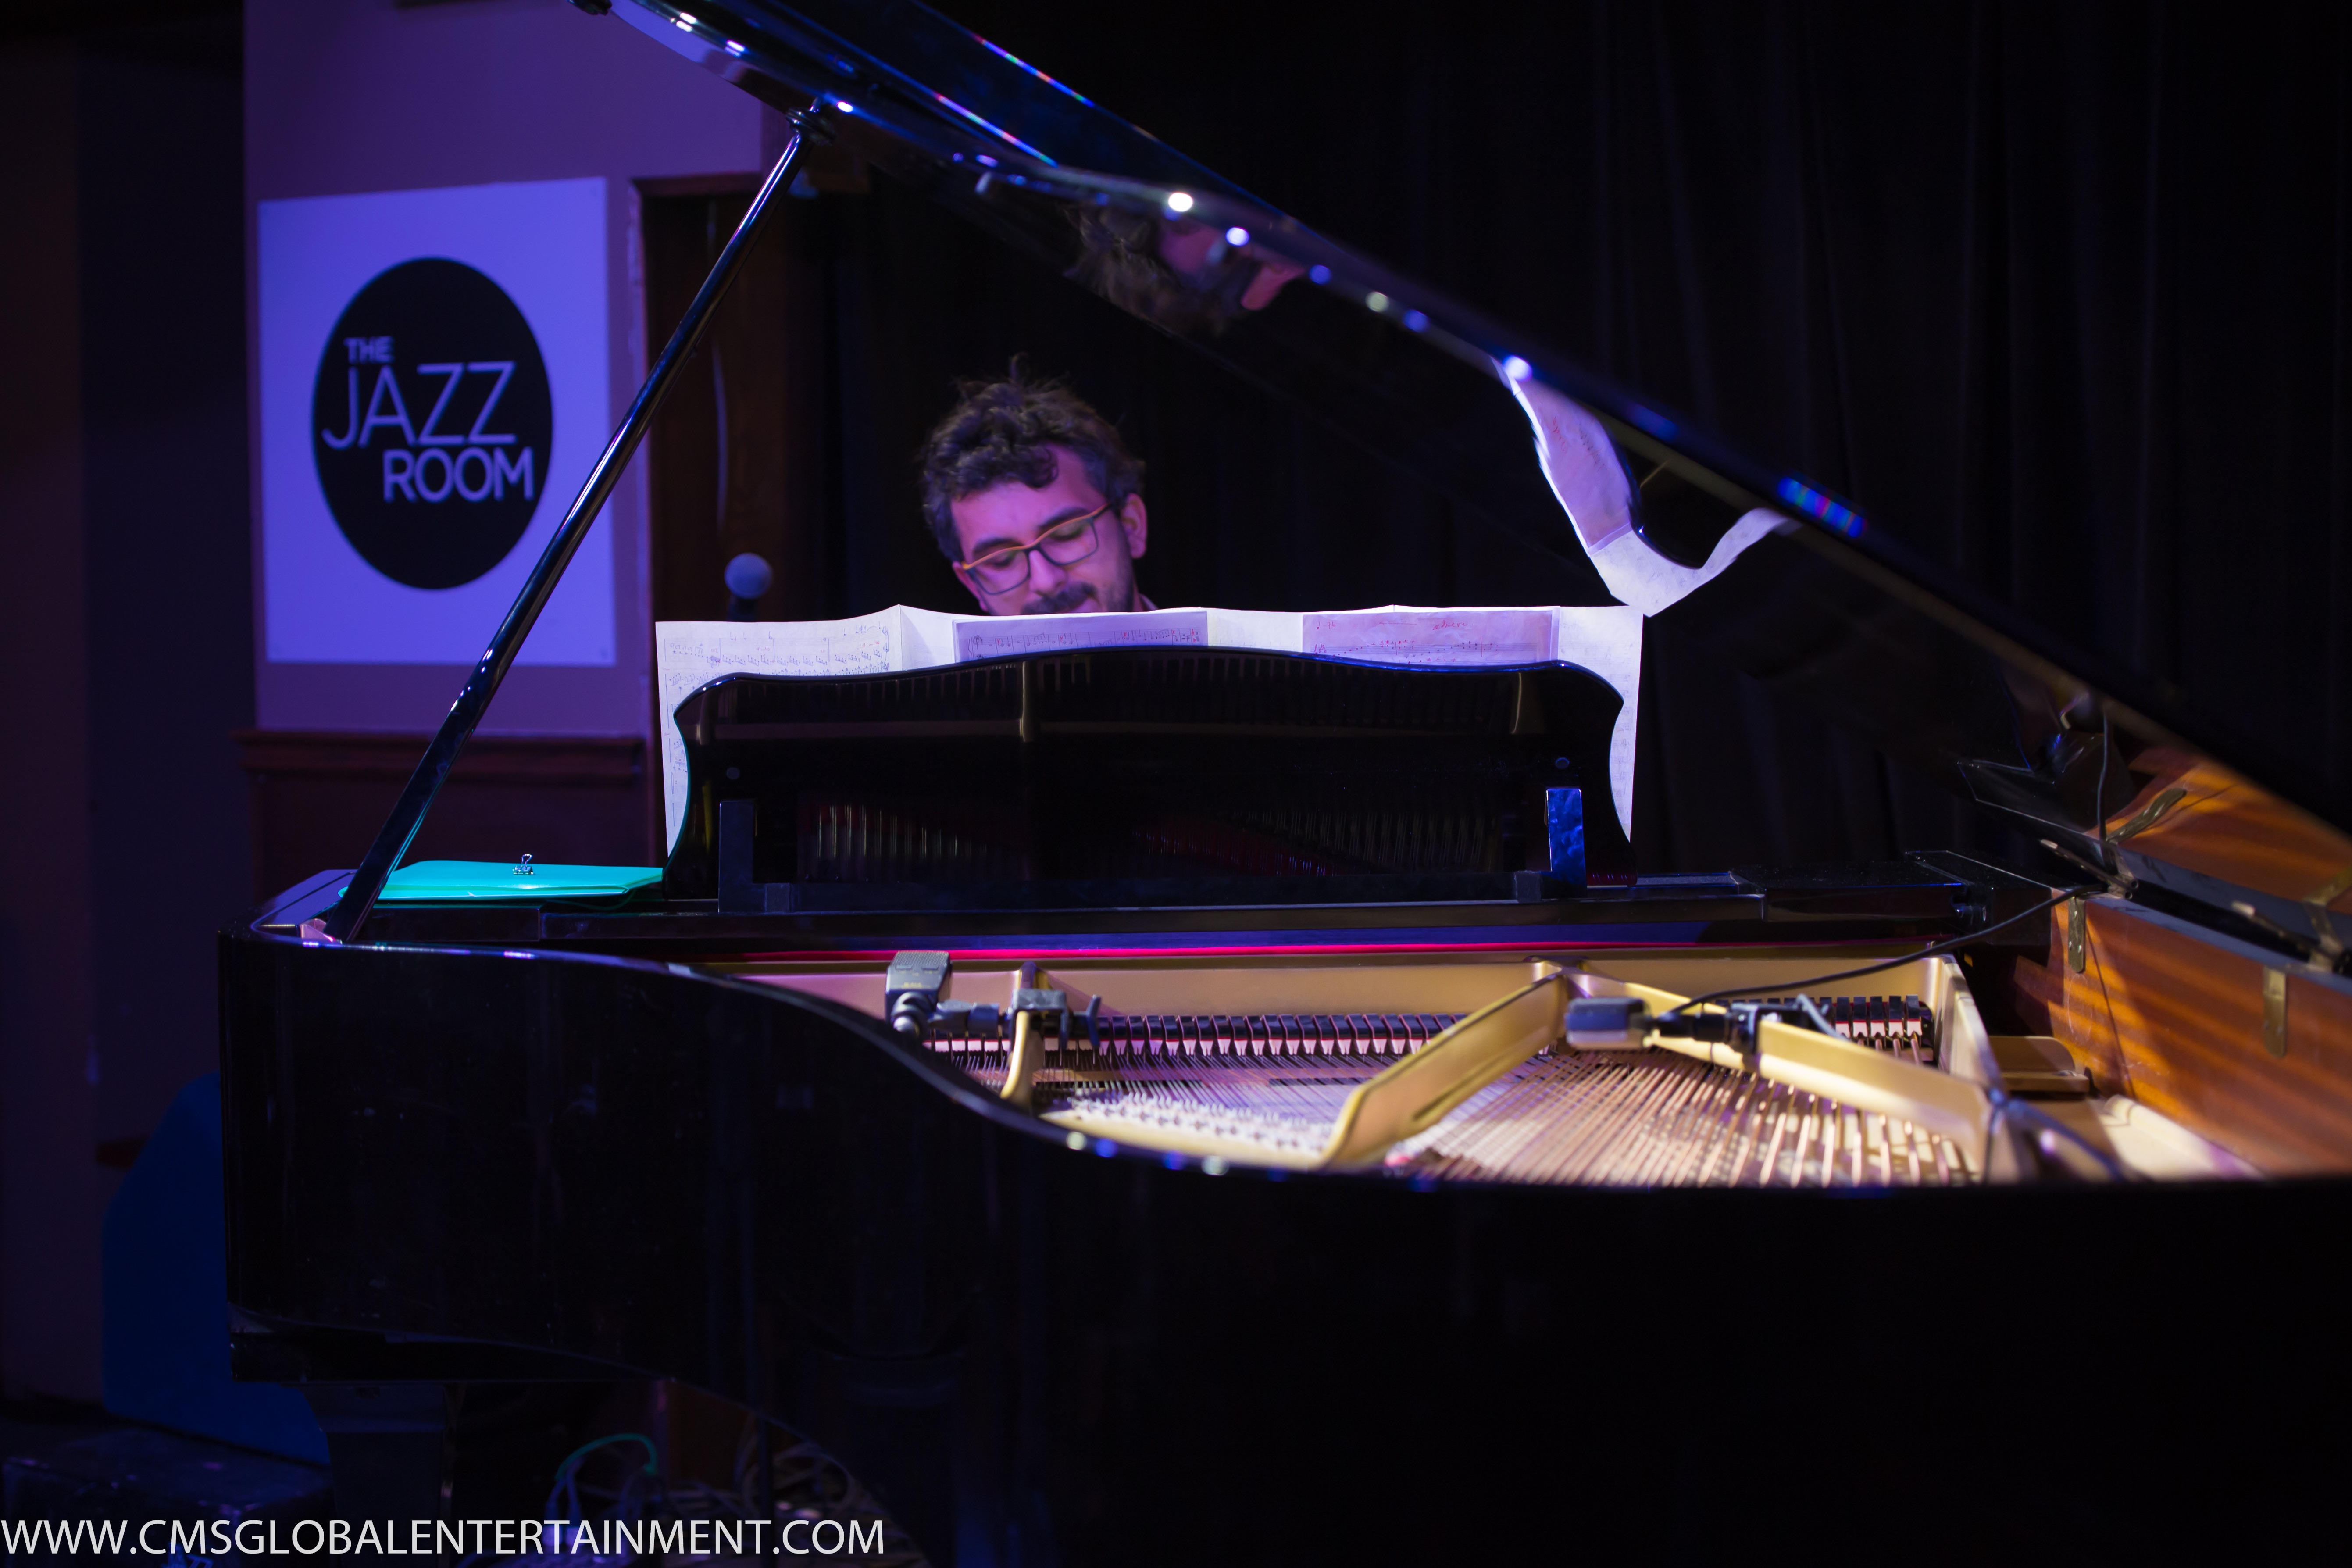 Teo Milea performing at The Jazz Room in Waterloo